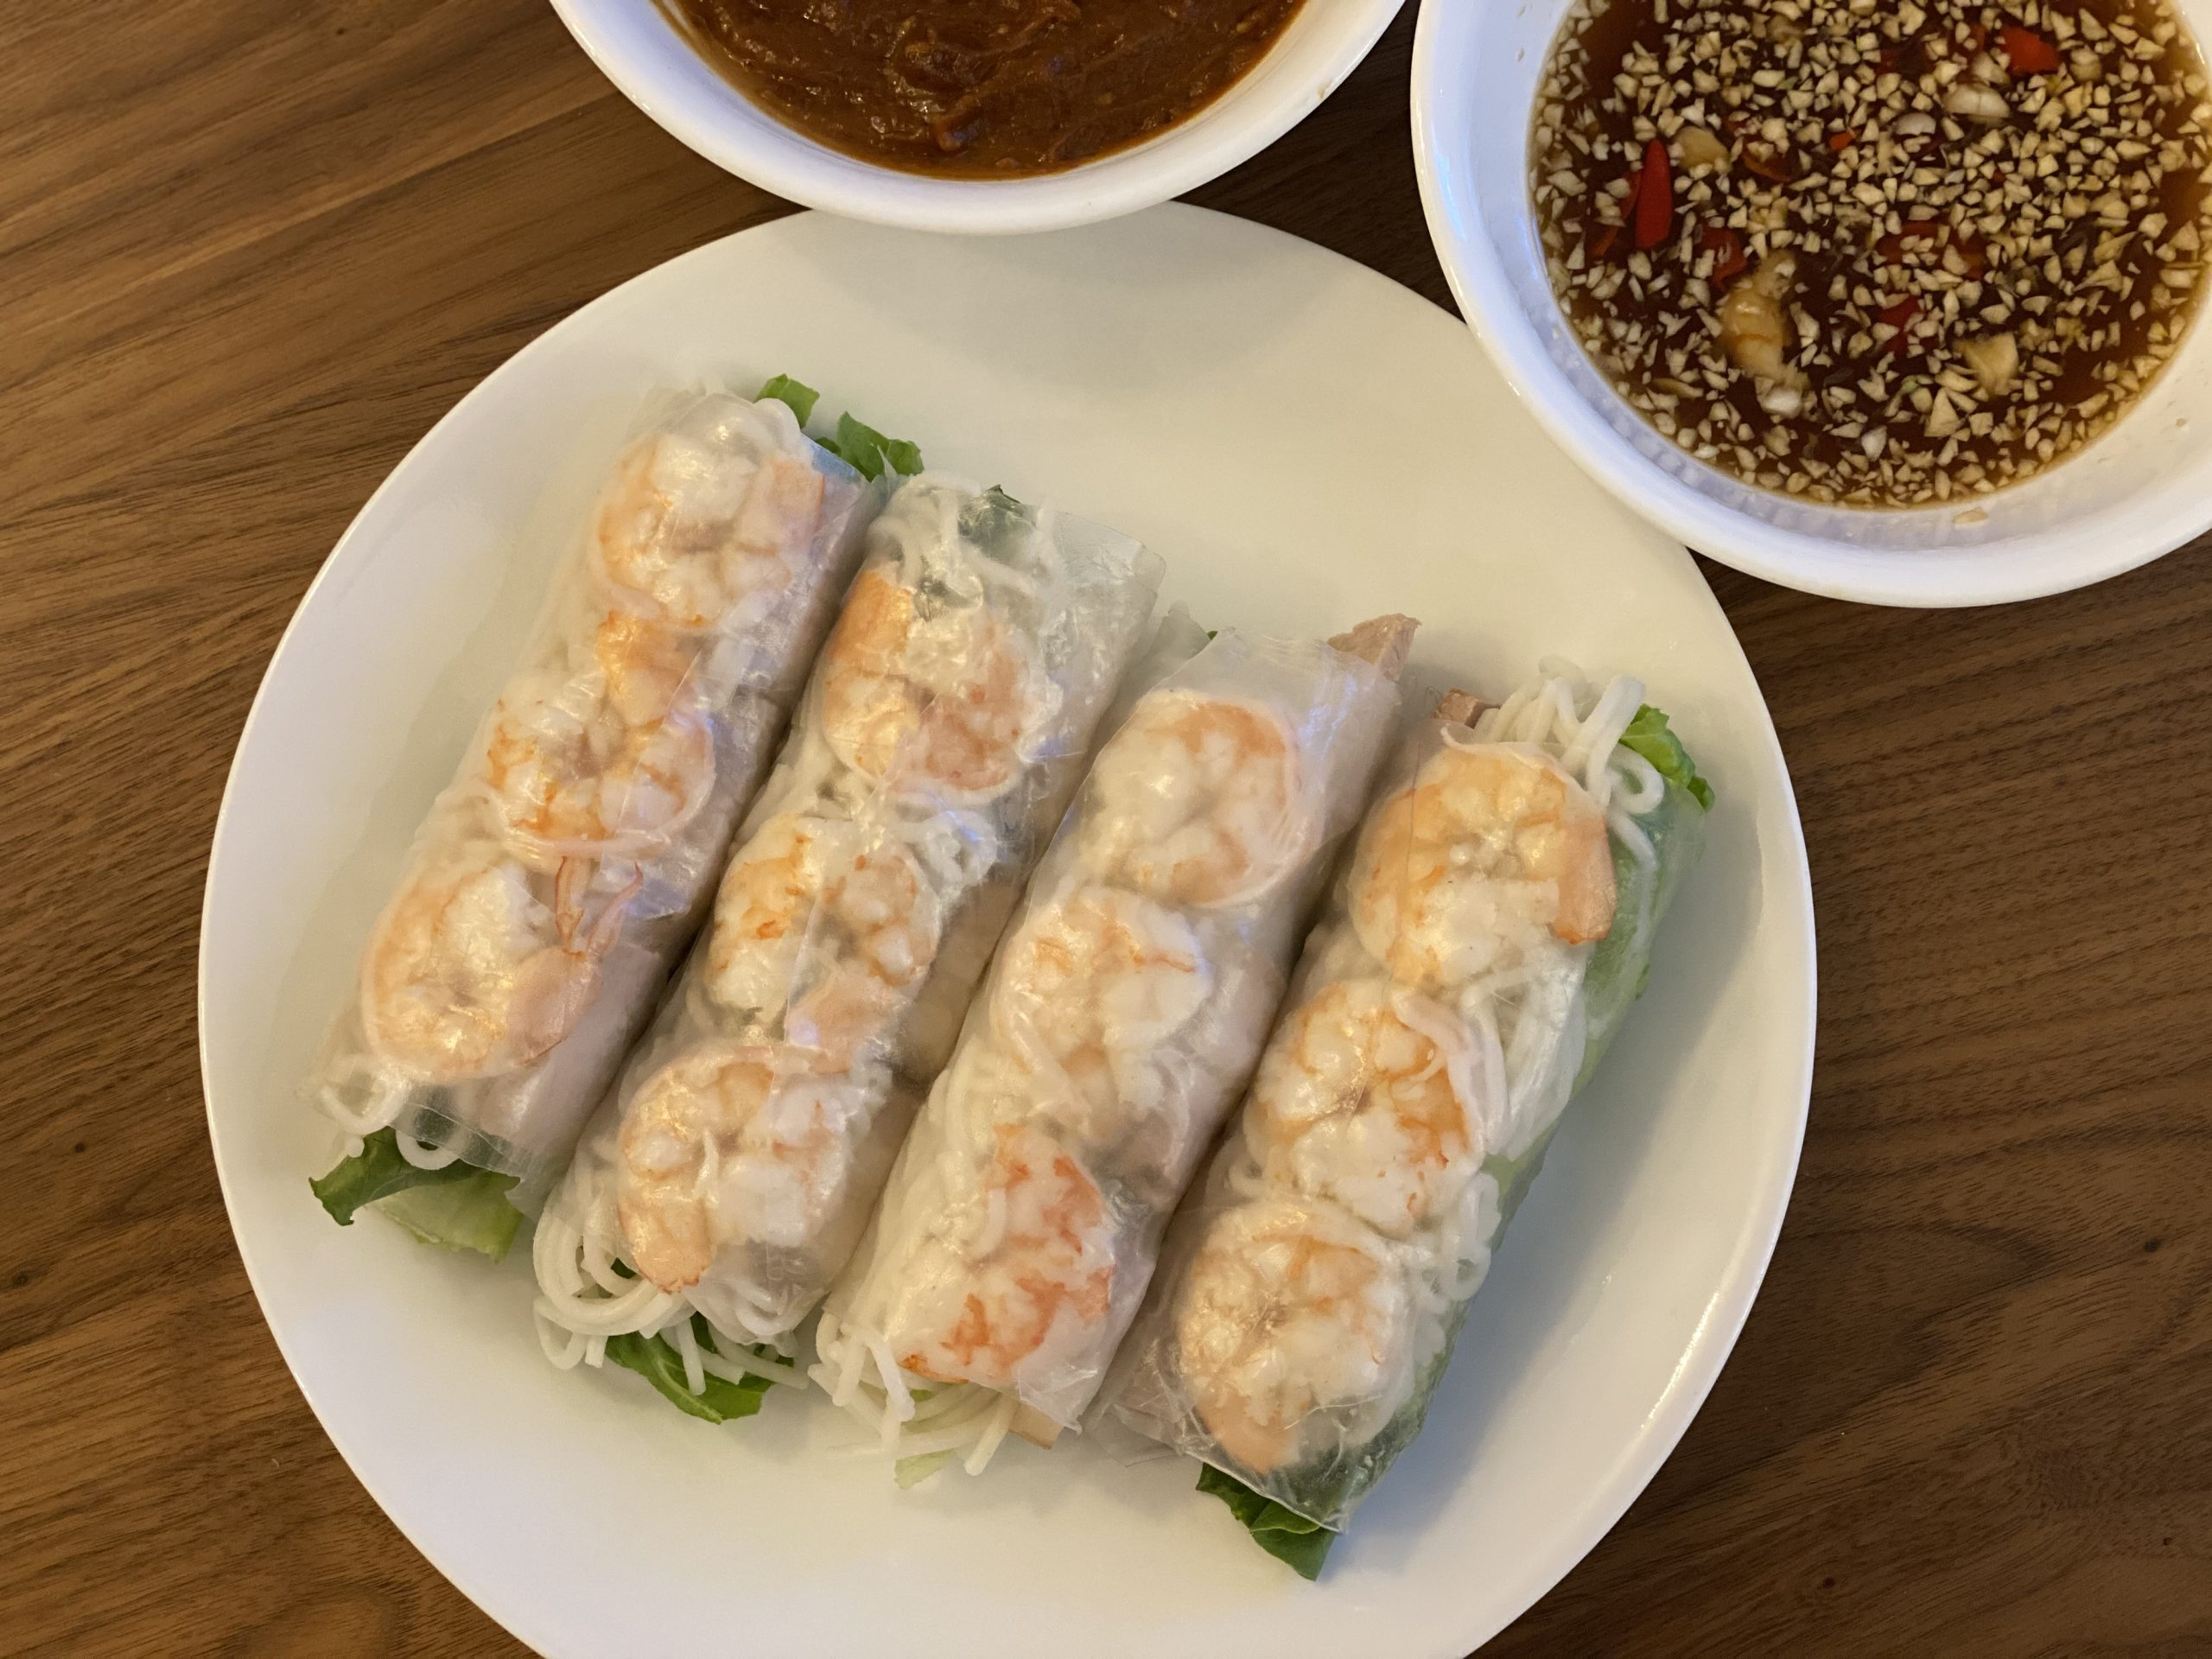 Vietnamese Spring Rolls with Shrimp and Pork and Peanut Sauce + Fish Sauce (Goi Cuon Tom Thit)